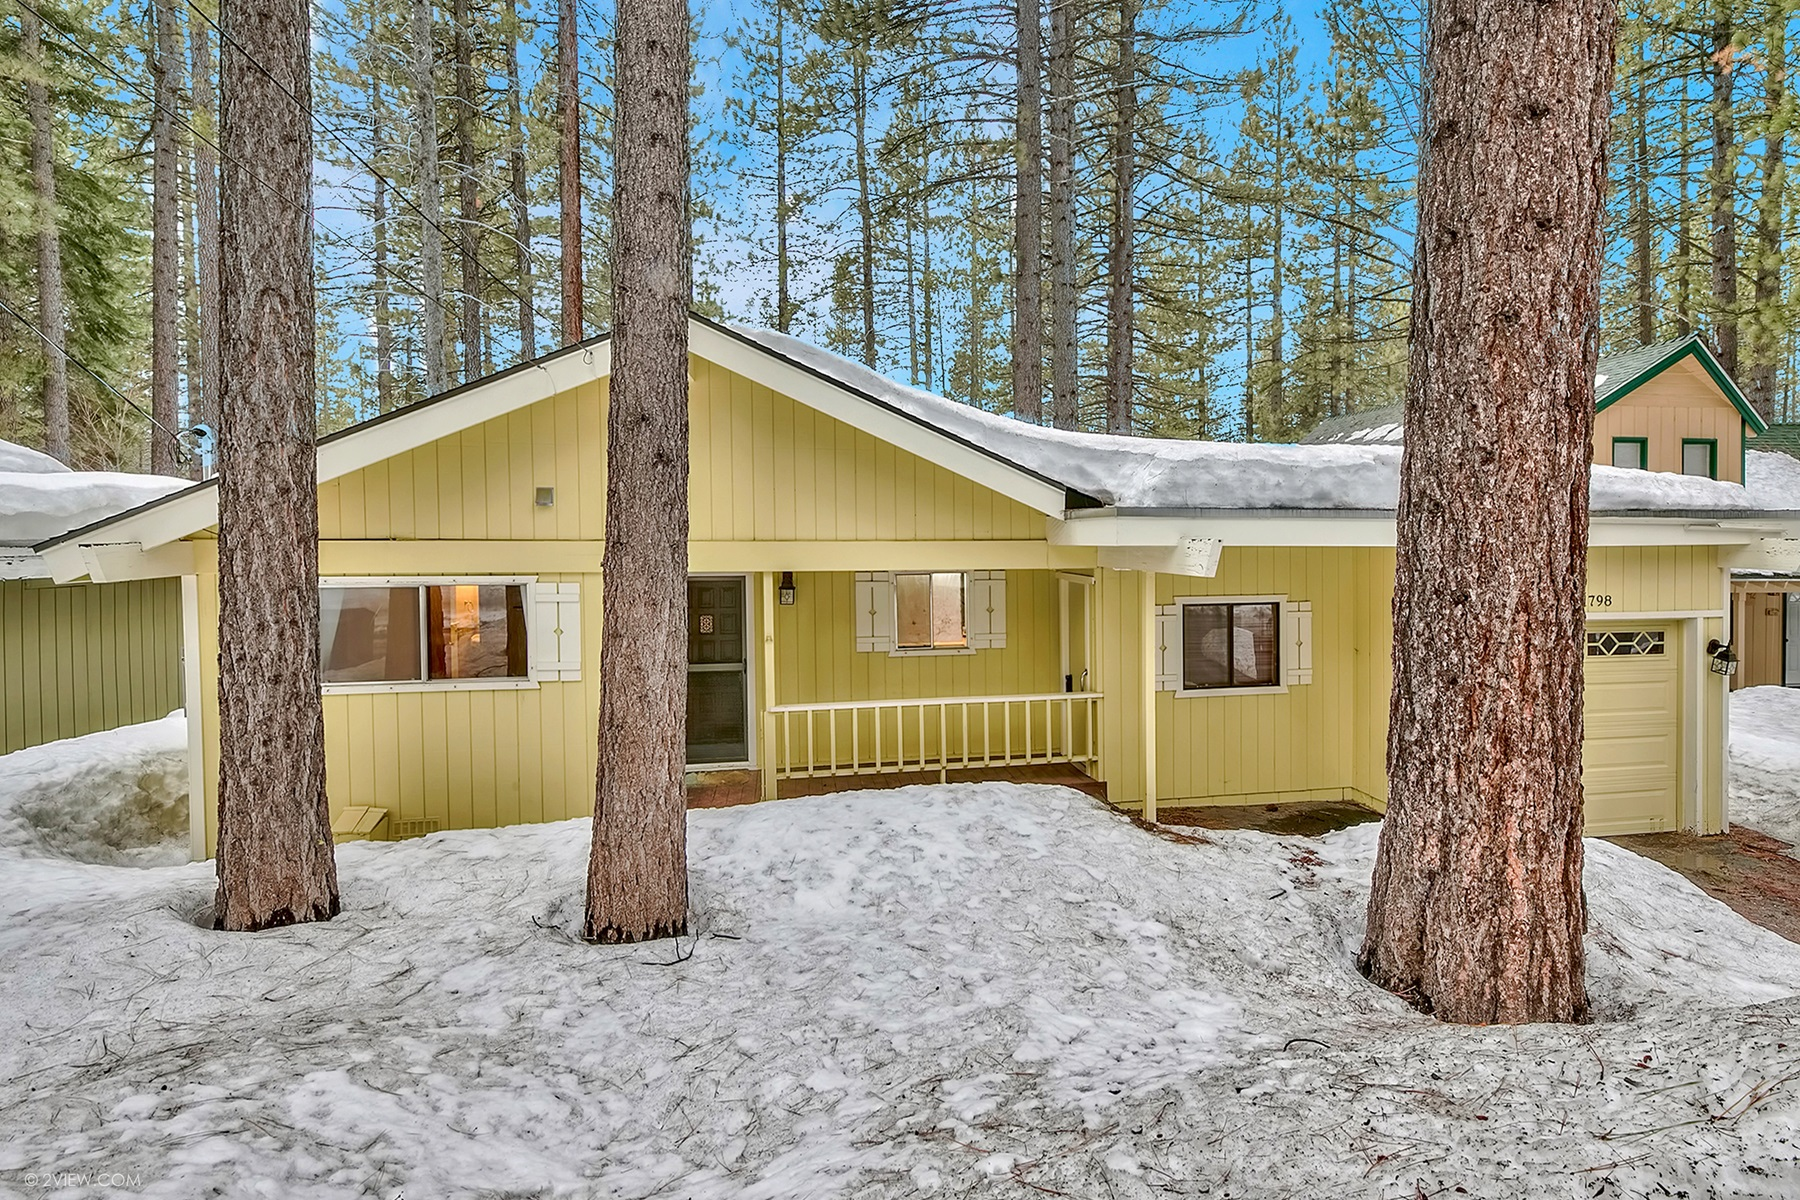 Single Family Home for Active at 1798 Saponi Street, South Lake Tahoe, CA 96150 1798 Saponi Street South Lake Tahoe, California 96150 United States